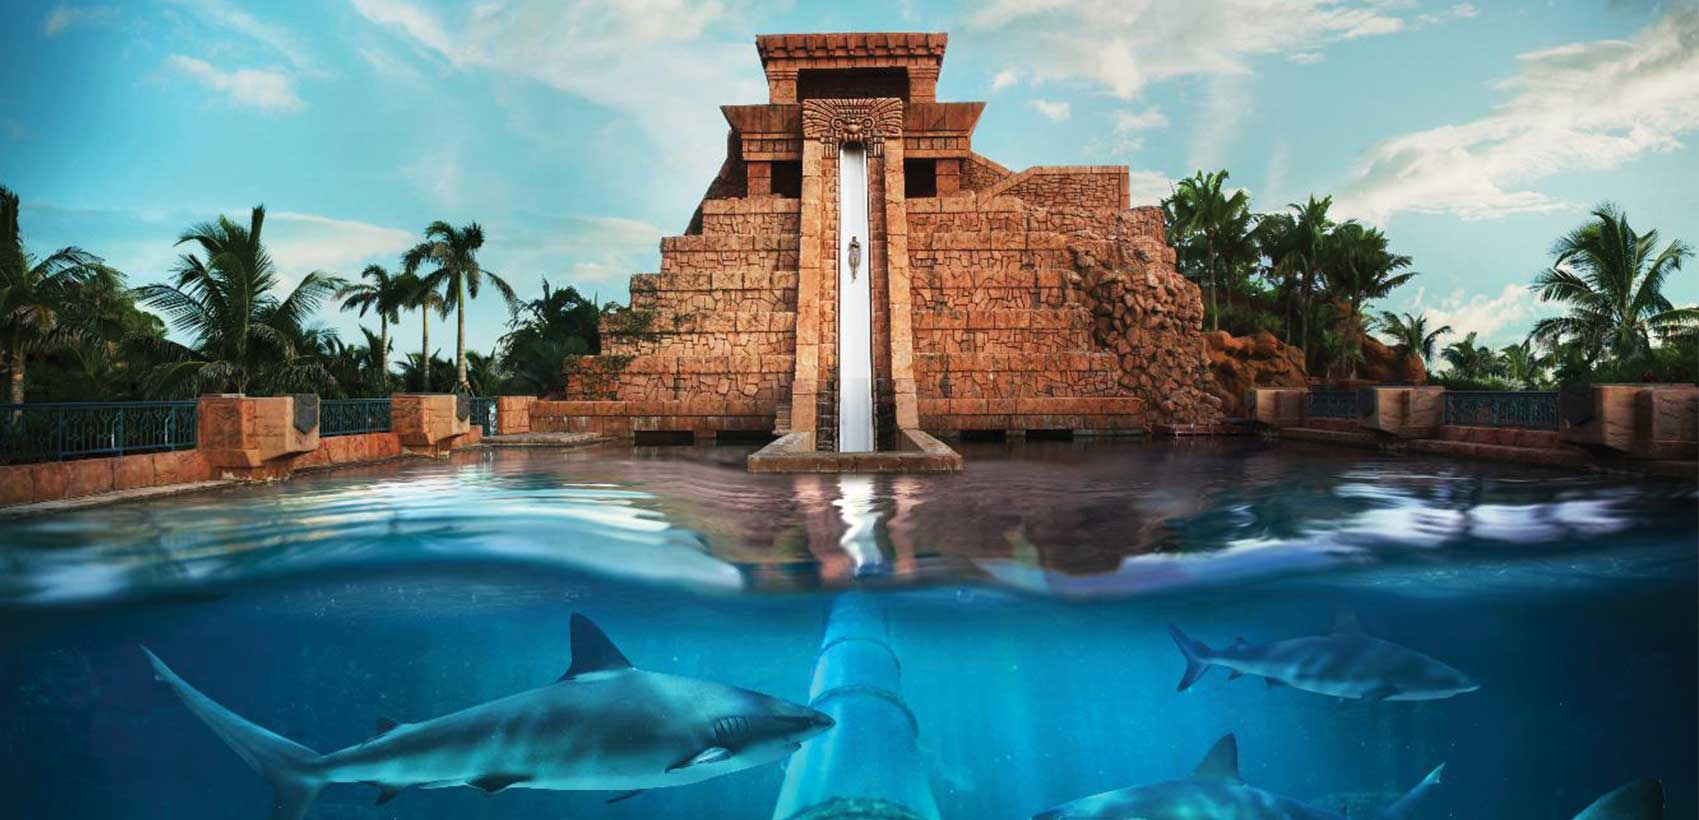 Save on Atlantis in the Bahamas with WestJet Vacations 3